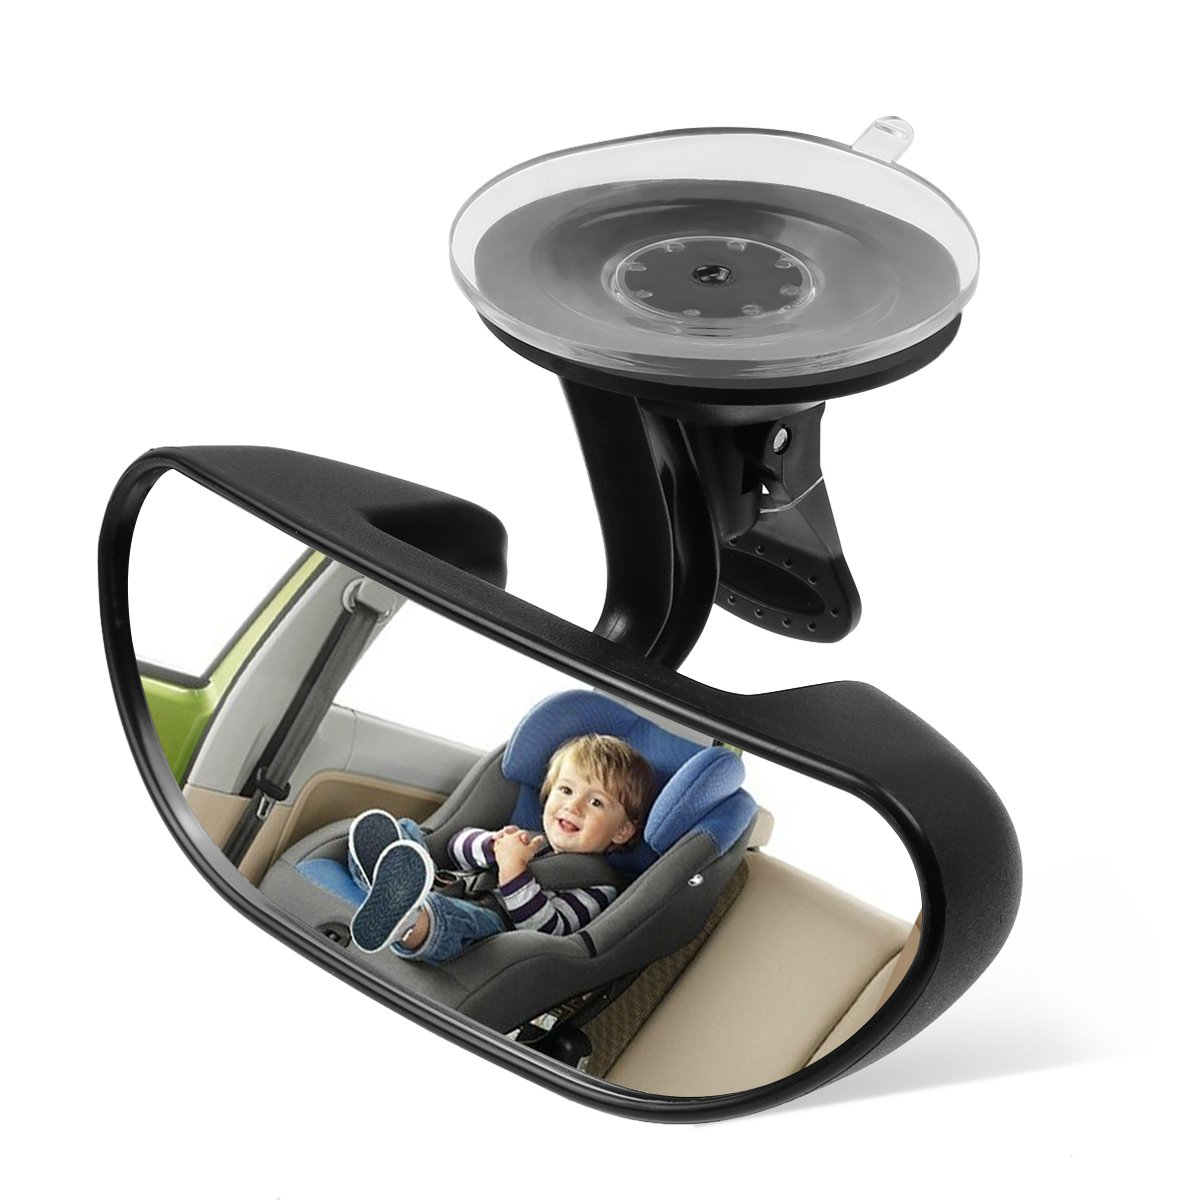 Ideapro Baby Car Backseat Mirror, Rear View Facing Back Seat Mirror Child Safety Rearview Adjustable Forward Baby Mirror for Infant Ideapro-baby